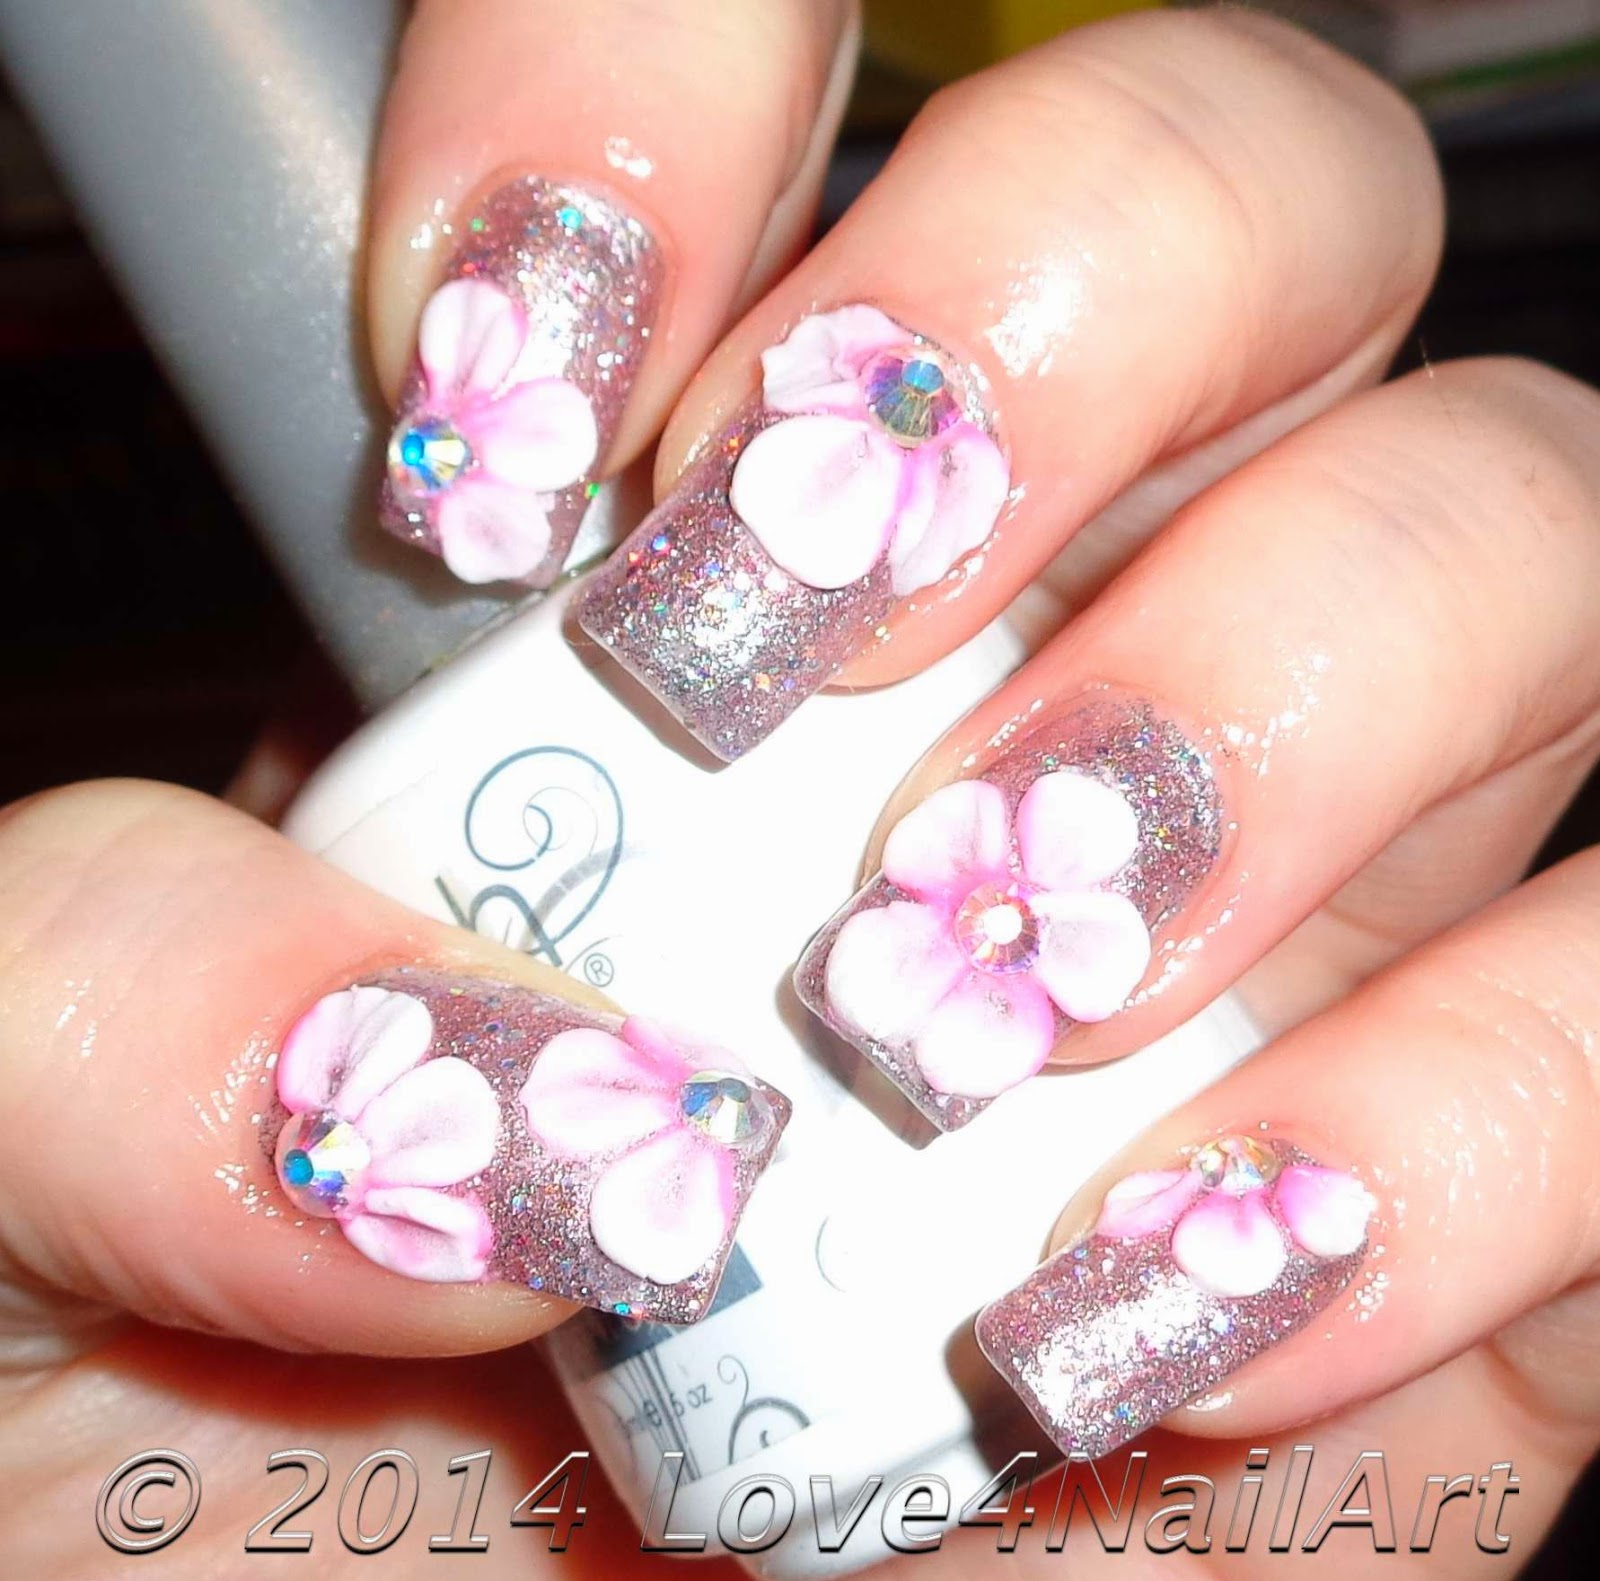 Love4NailArt: Two Toned 3d Flower Nail Art Design Idea